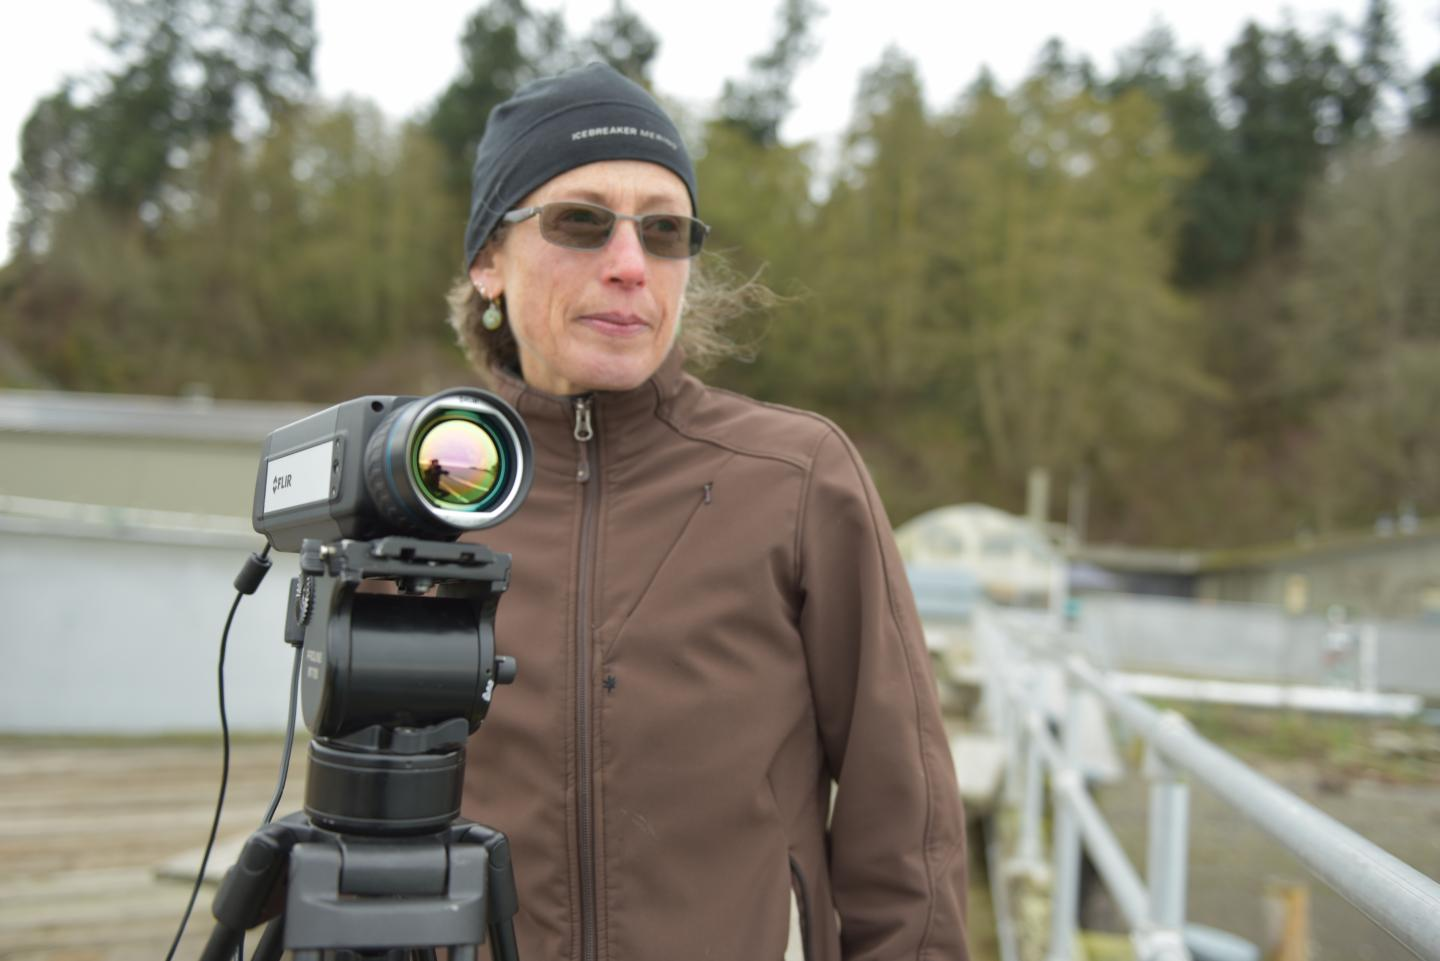 PNNL engineer Shari Matzner uses ThermalTracker software with a thermal video camera to analyze video to help birds and bats near offshore wind farms.